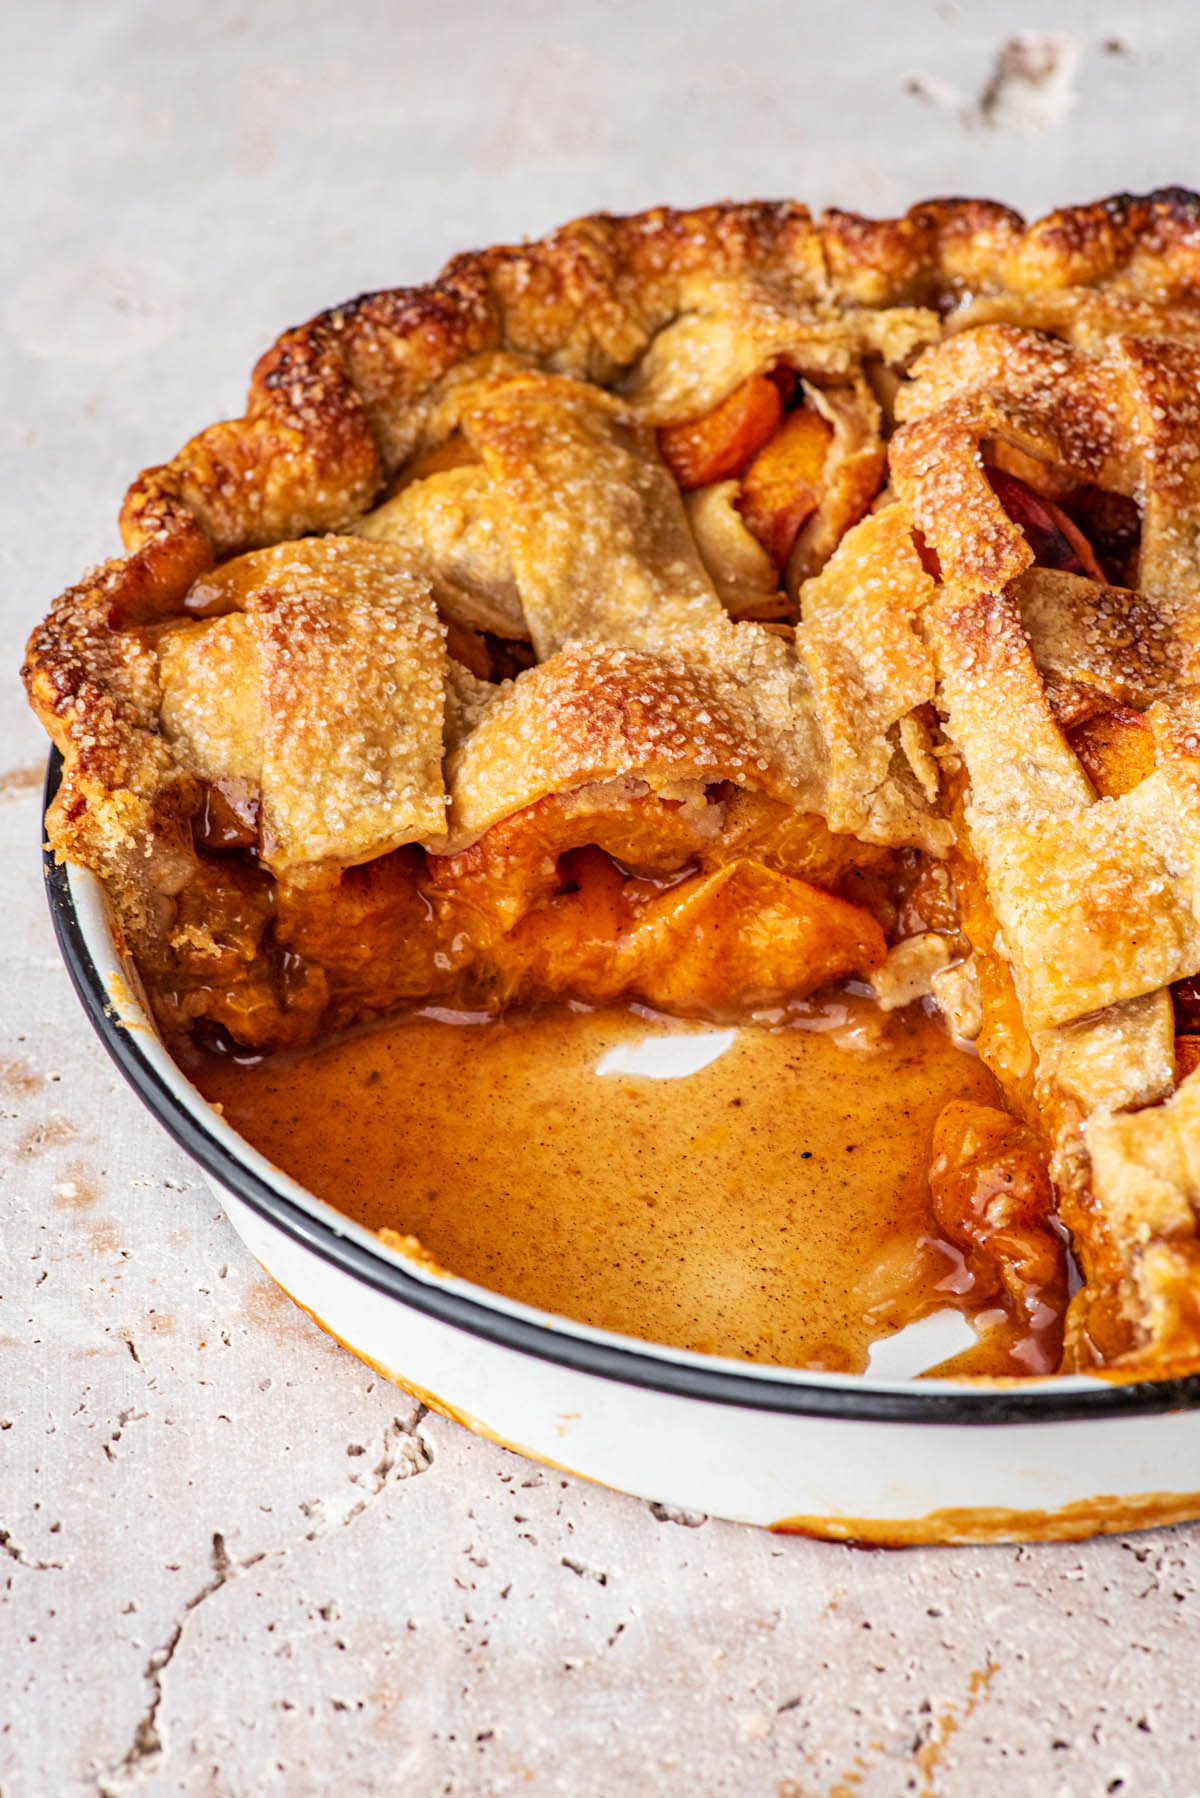 Pie in the tin with a slice removed.